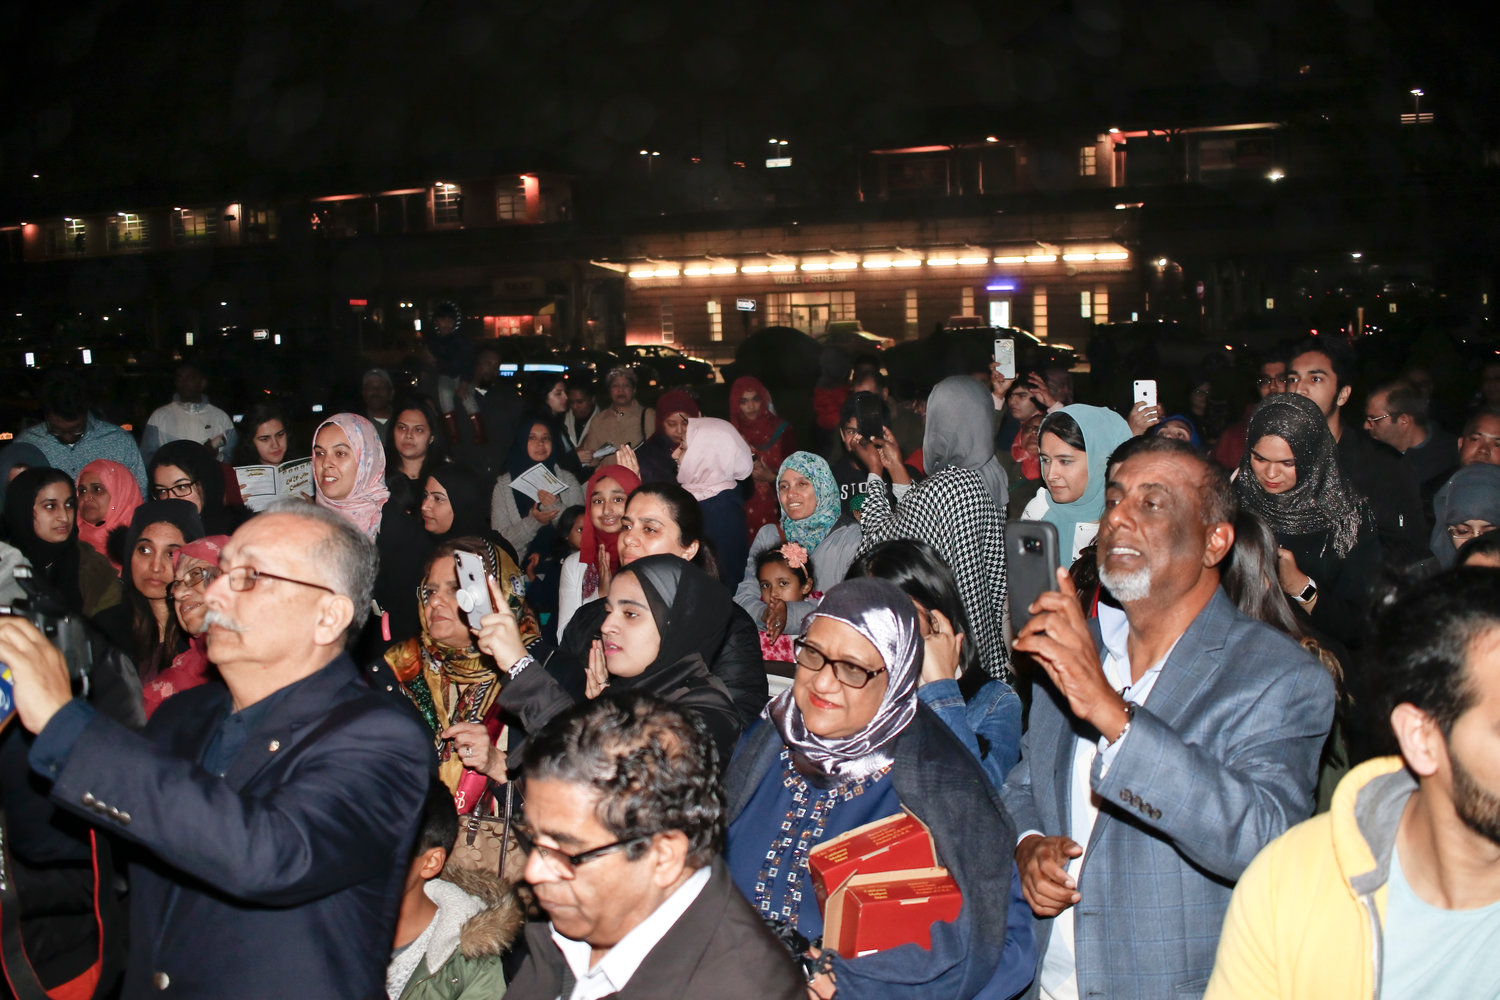 Despite chilly, wet weather, roughly 200 local Muslims attended the crescent star lighting.